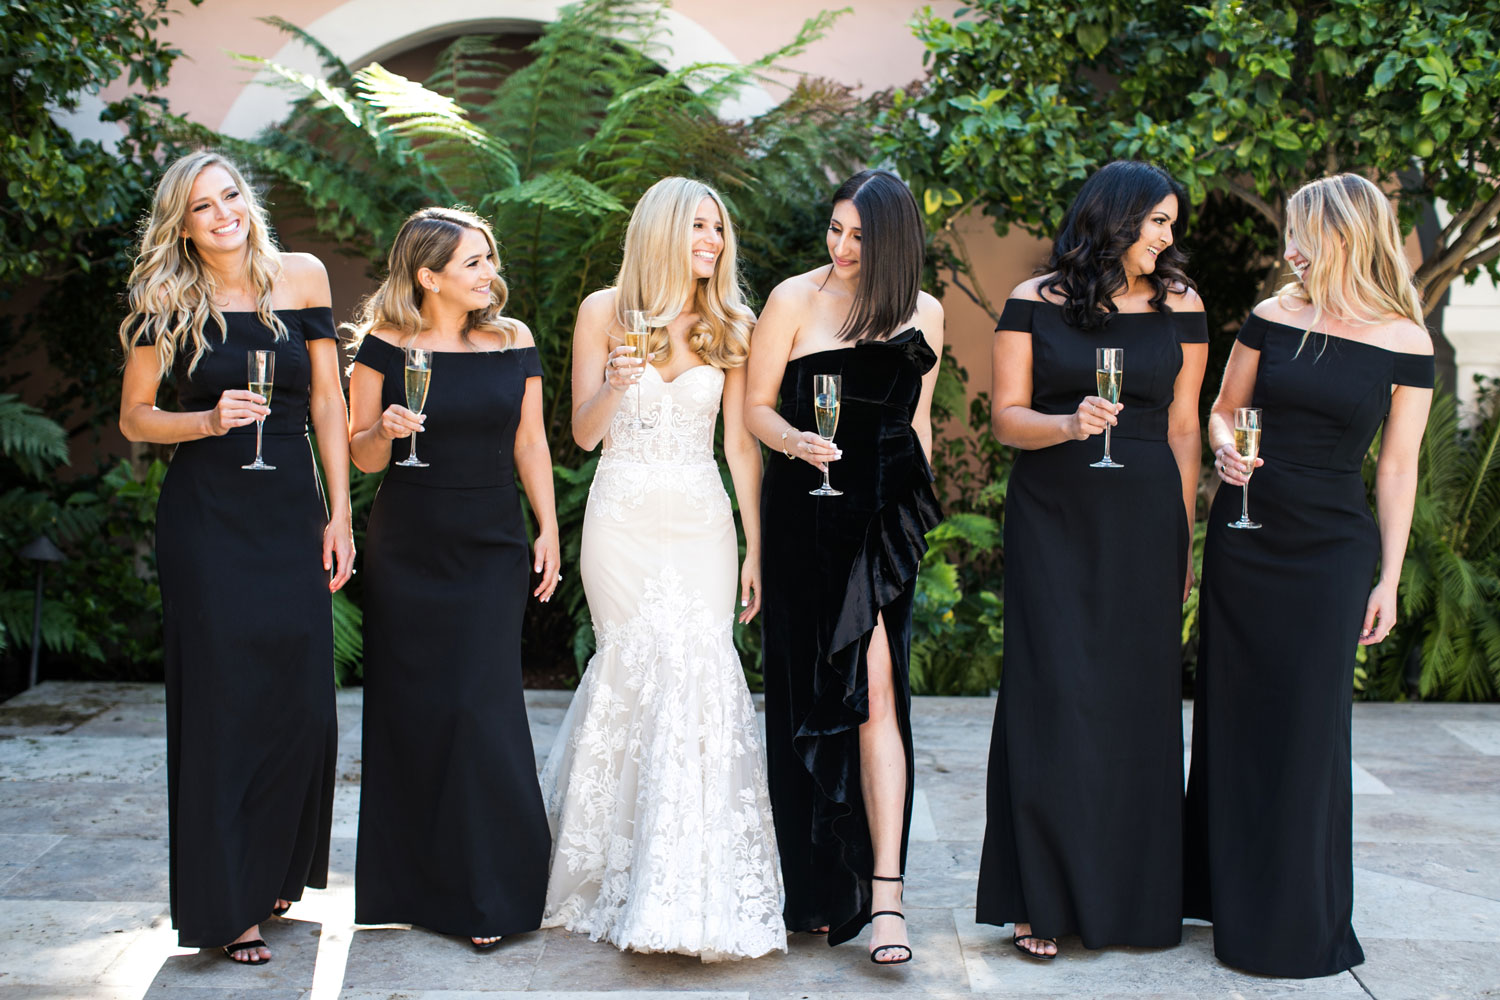 bride and bridesmaids with champagne, bridesmaids in off-the-shoulder black gown, maid of honor in black velvet dress, how to choose your bridal party